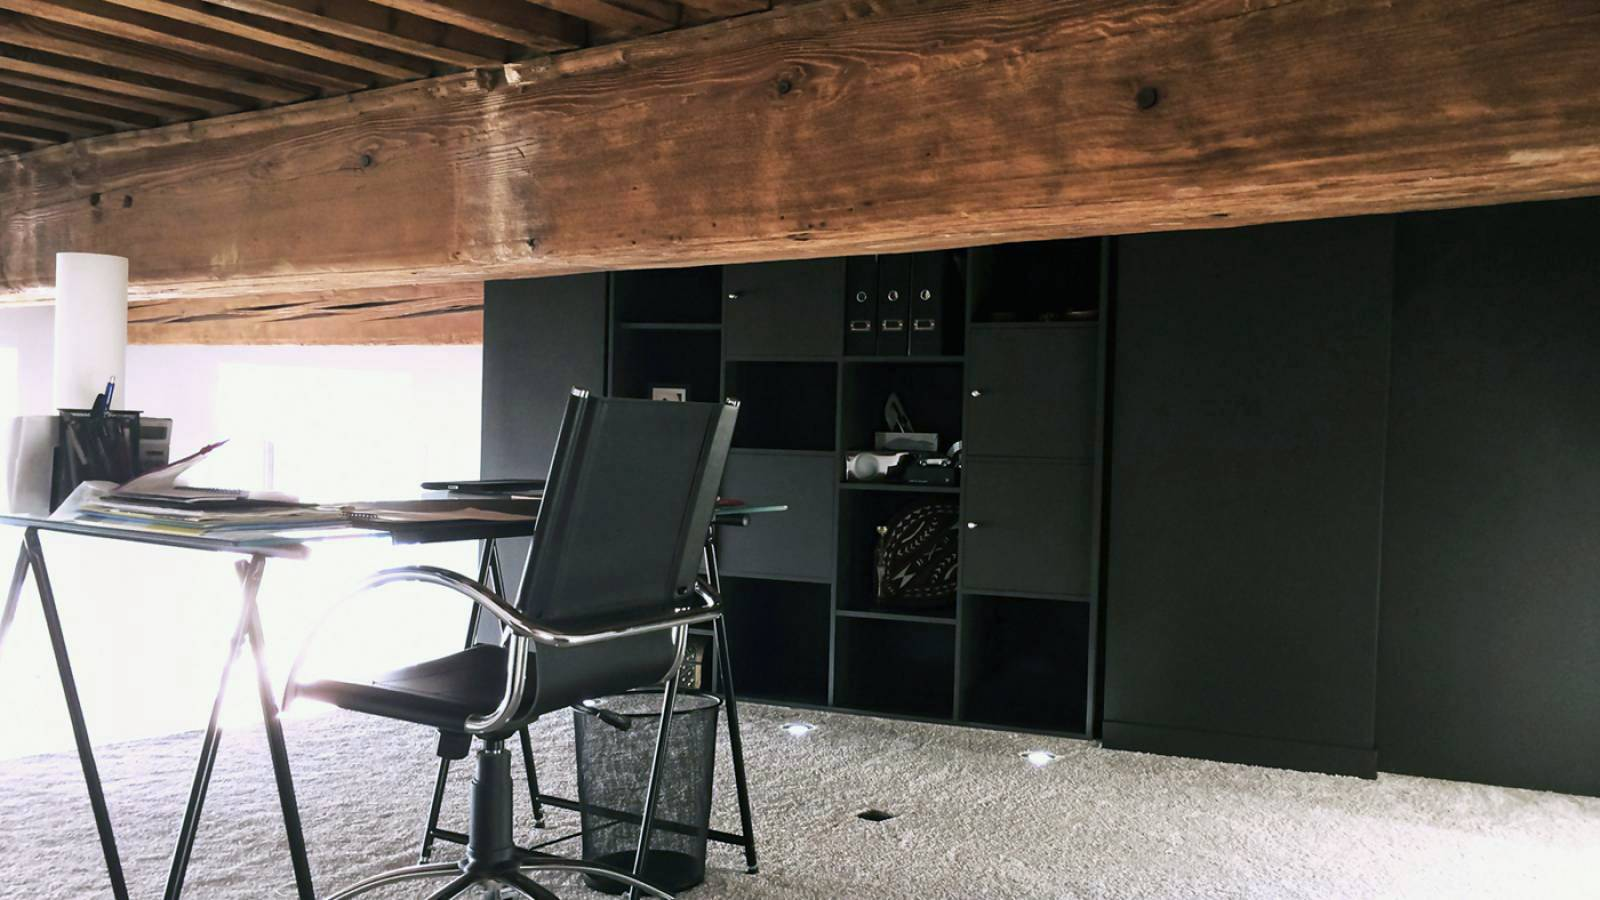 agencement int rieur et restructuration d 39 un appartement lyon dans le rh ne architecte a2 sb. Black Bedroom Furniture Sets. Home Design Ideas